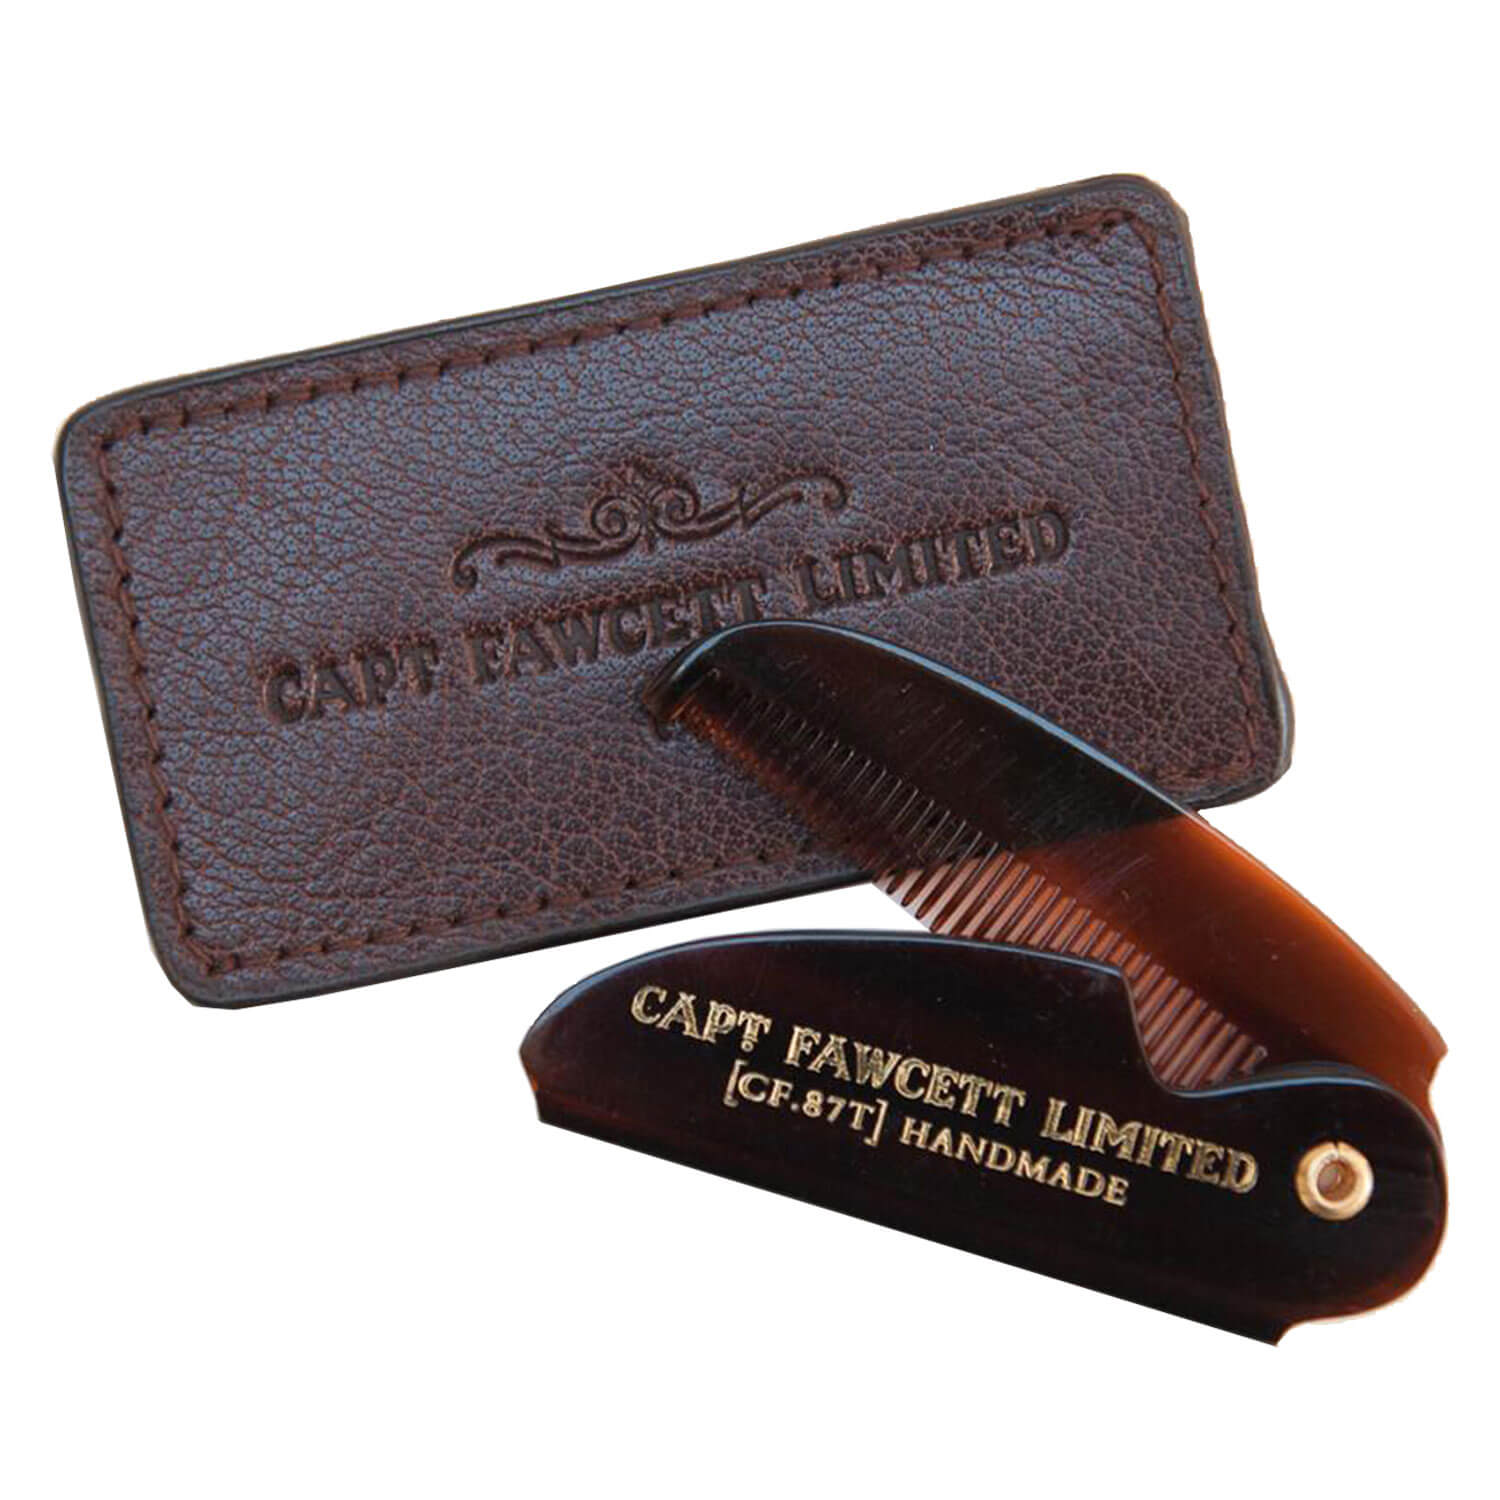 Capt. Fawcett Tools - Folding Pocket Moustache Comb with Leather Case